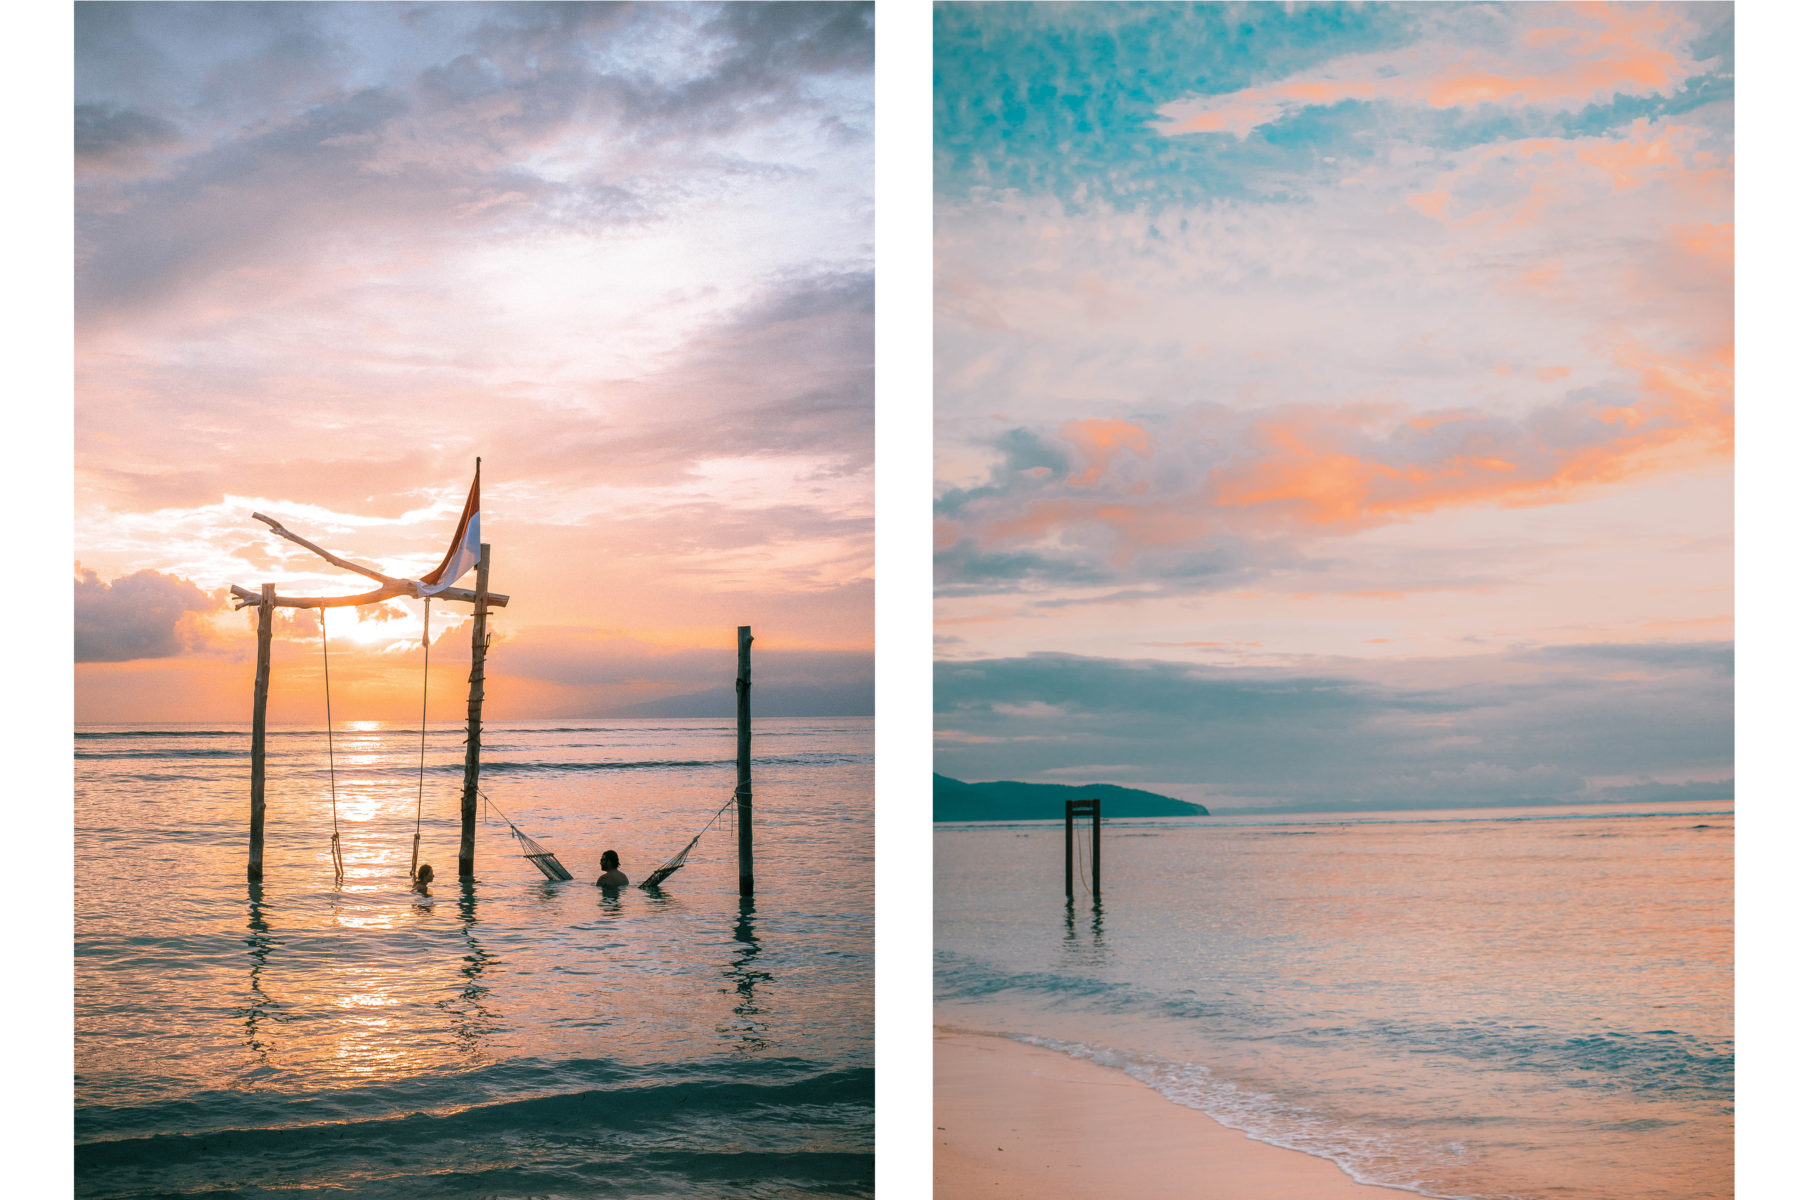 gili islands cotton candy sky water blue colourful sunset hammocks in water indonesia